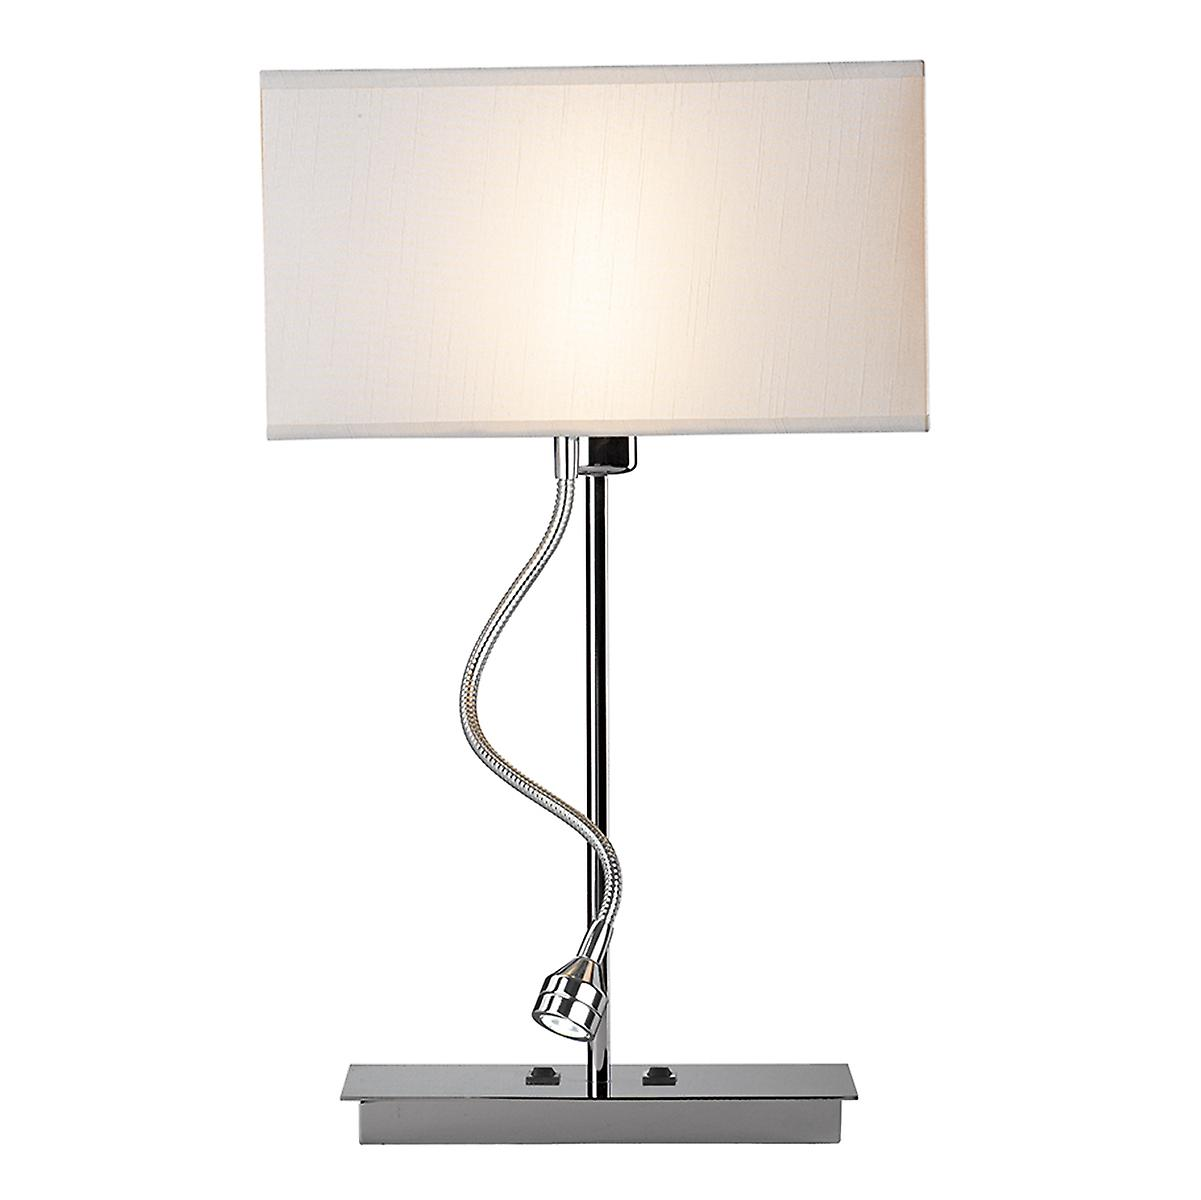 Dar AMA4050 Amalfi Switched Table Lamp With Led Flexi Arm Without Shade